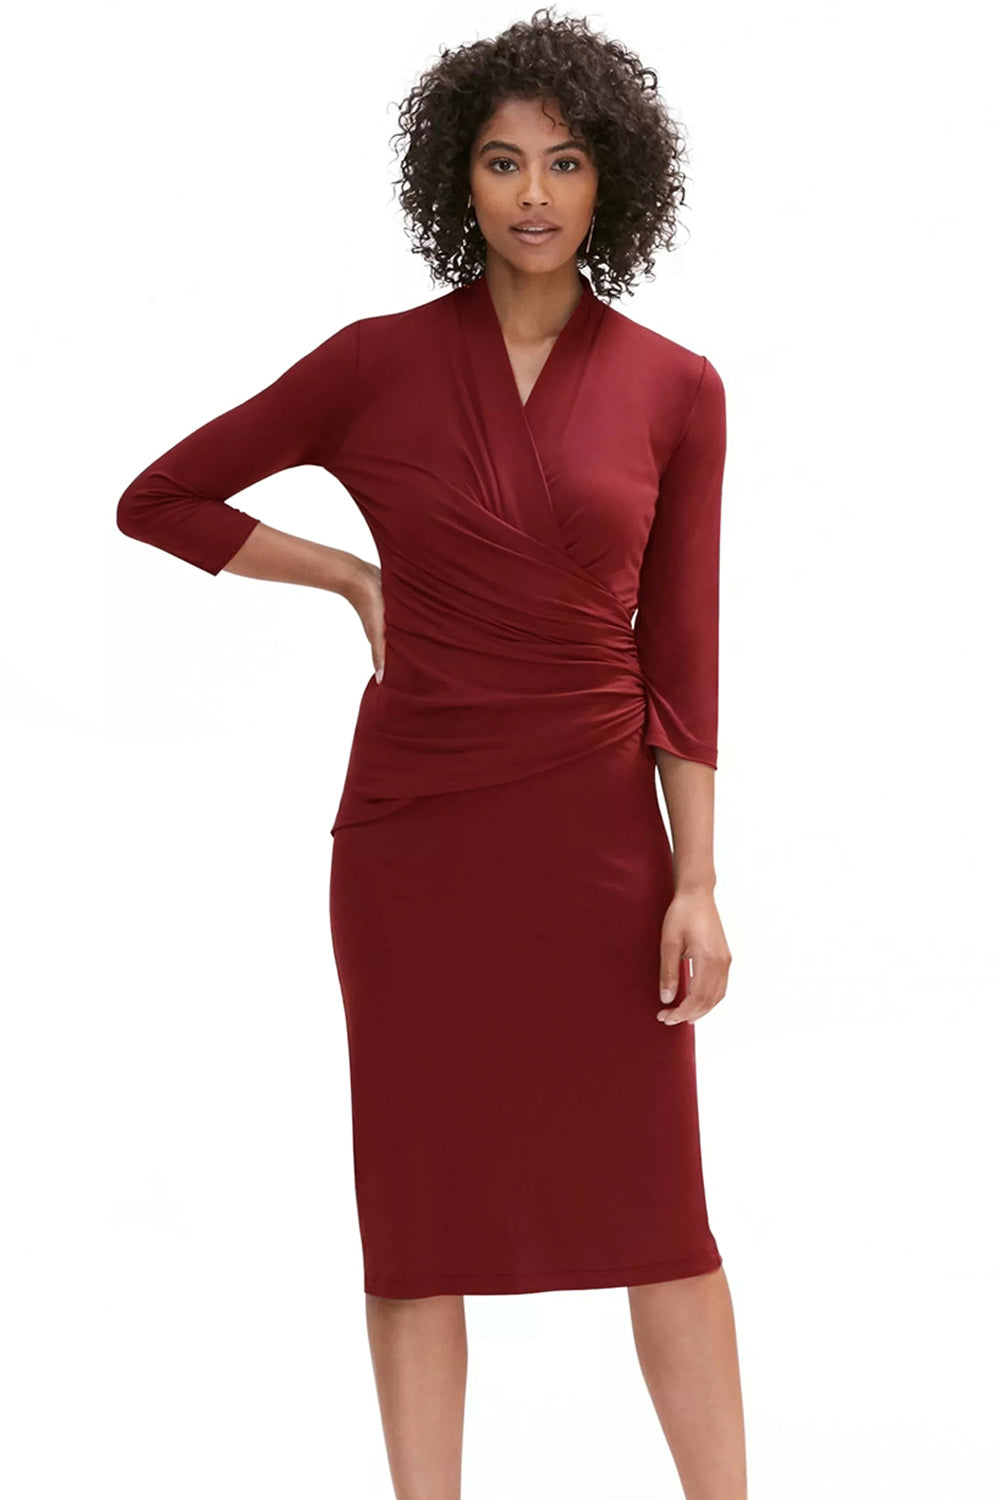 Dark Red Long Sleeve Pleated Wrap Midi Dress - Its Trendy Frenzy